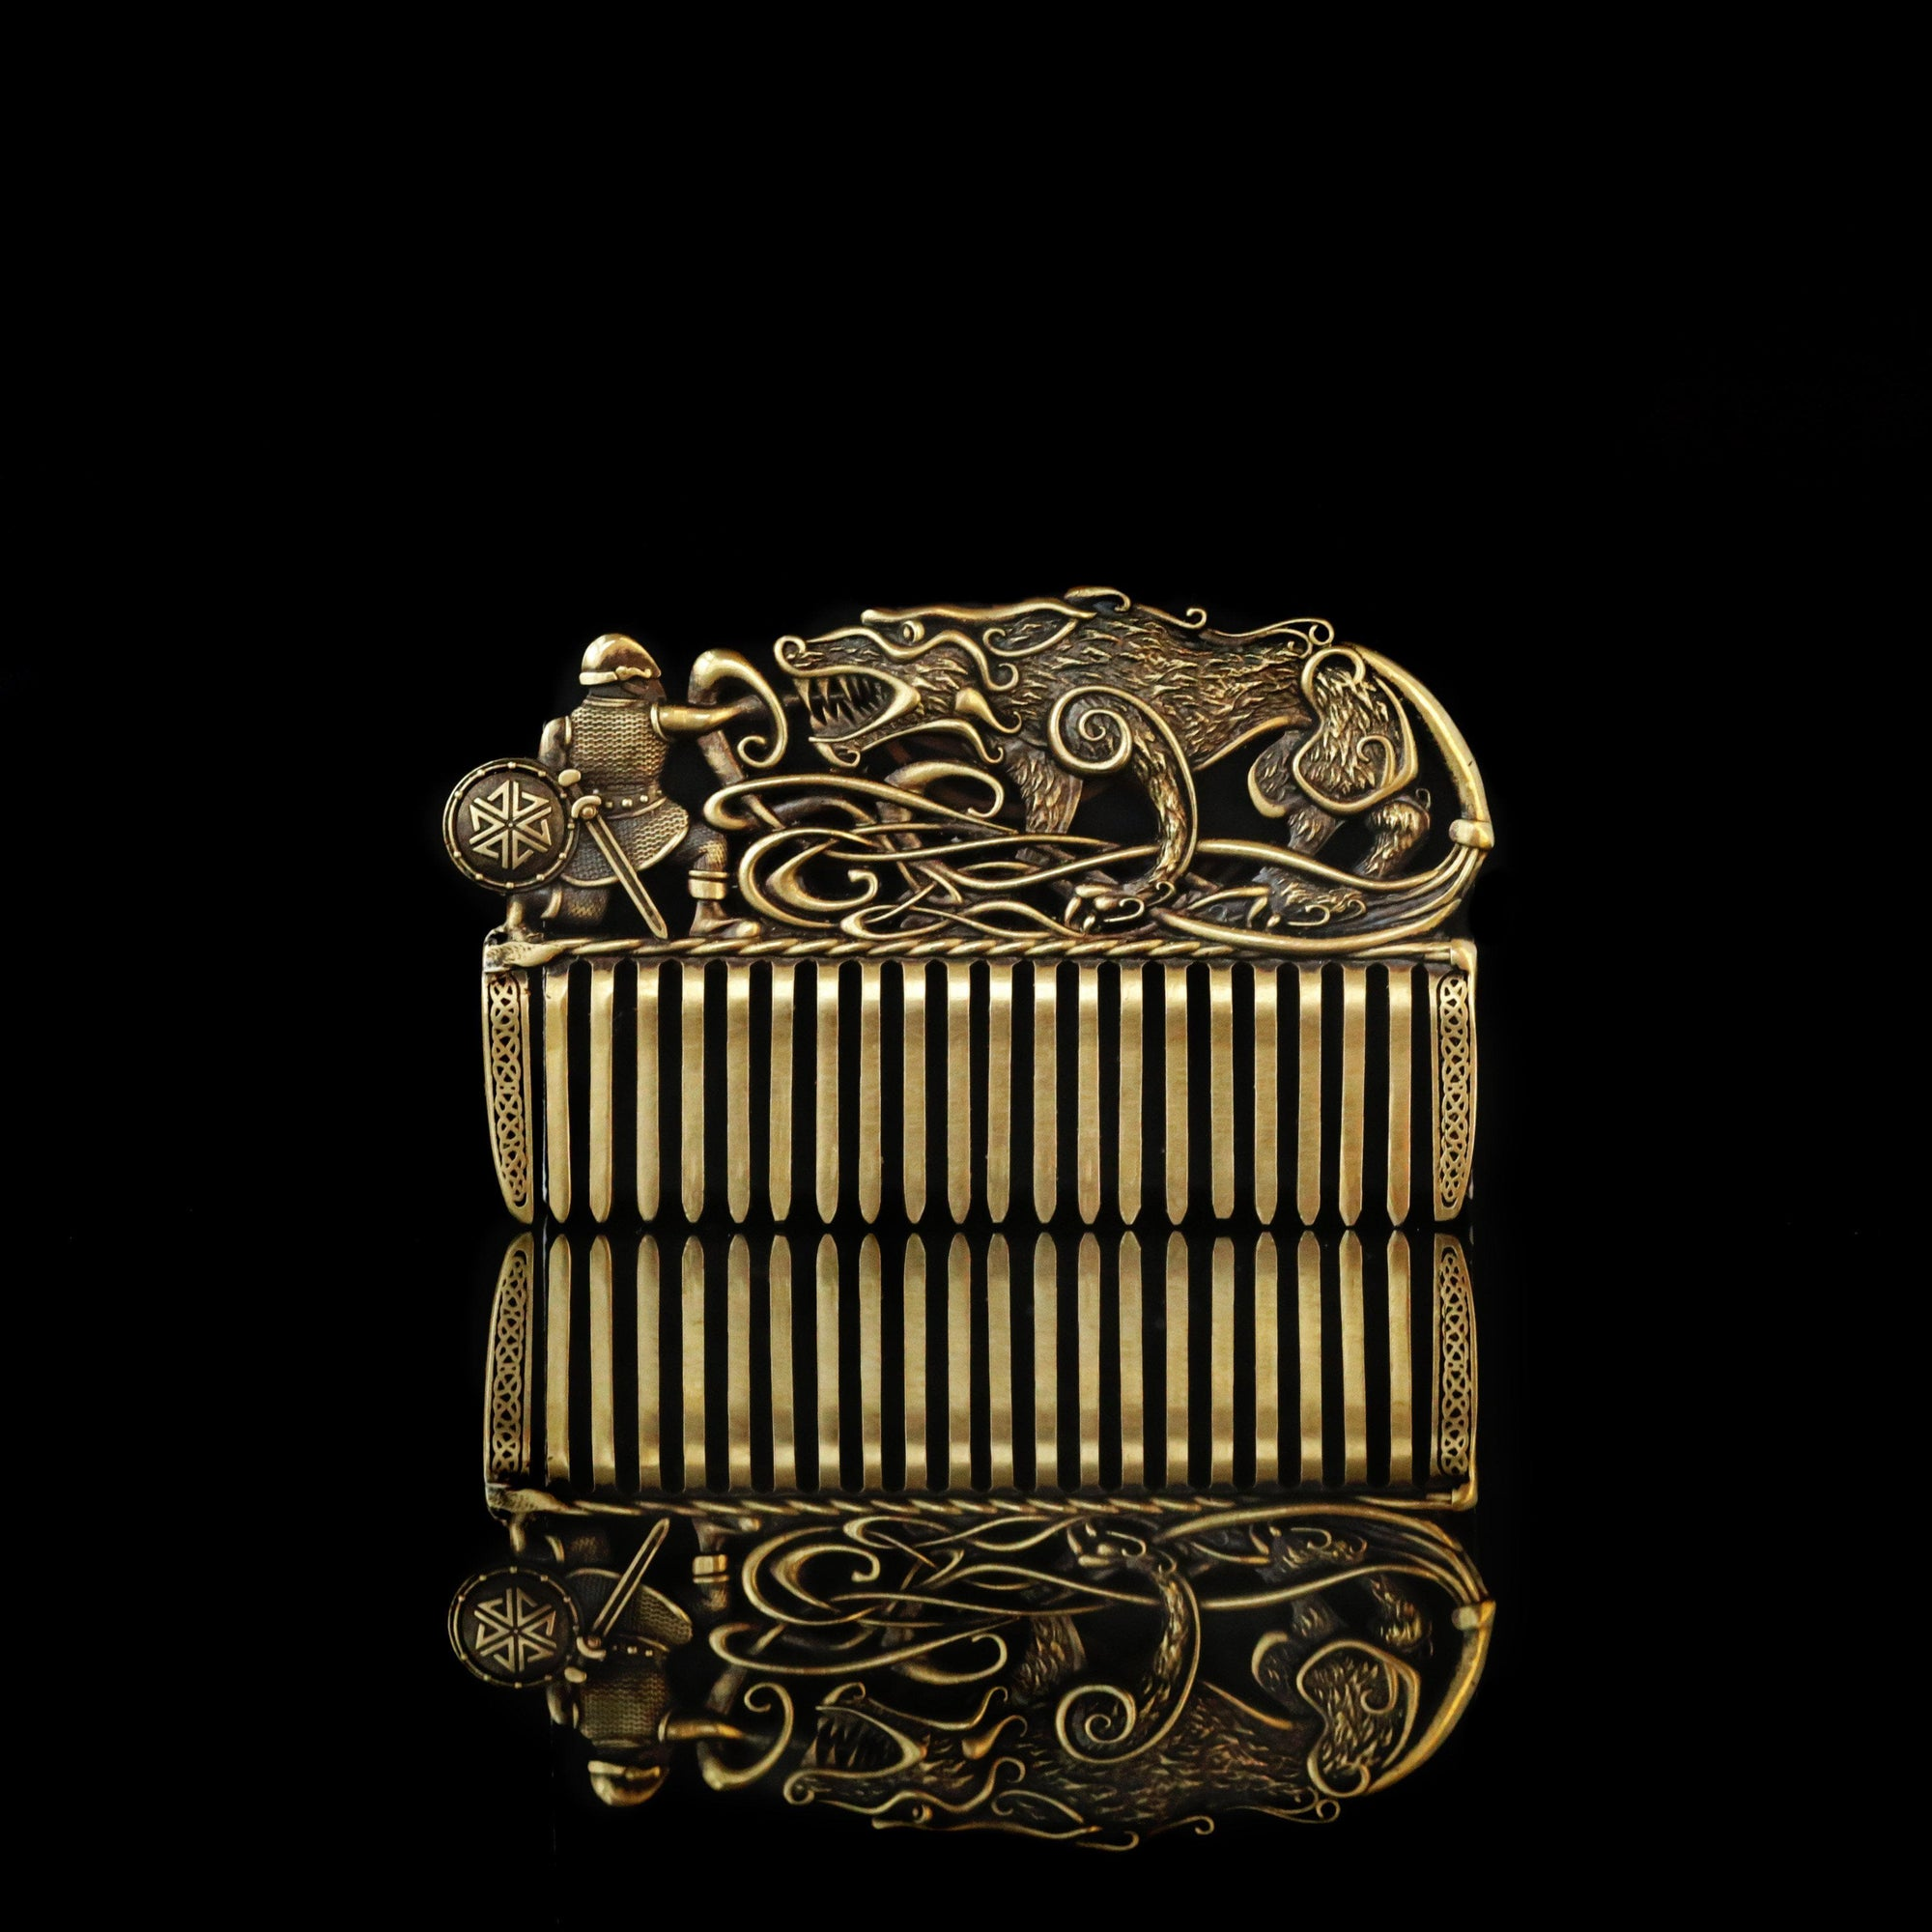 Viking Nordic Wolf Fenrir Beard & Hair Comb Ancient Treasures Ancientreasures Viking Odin Thor Mjolnir Celtic Ancient Egypt Norse Norse Mythology